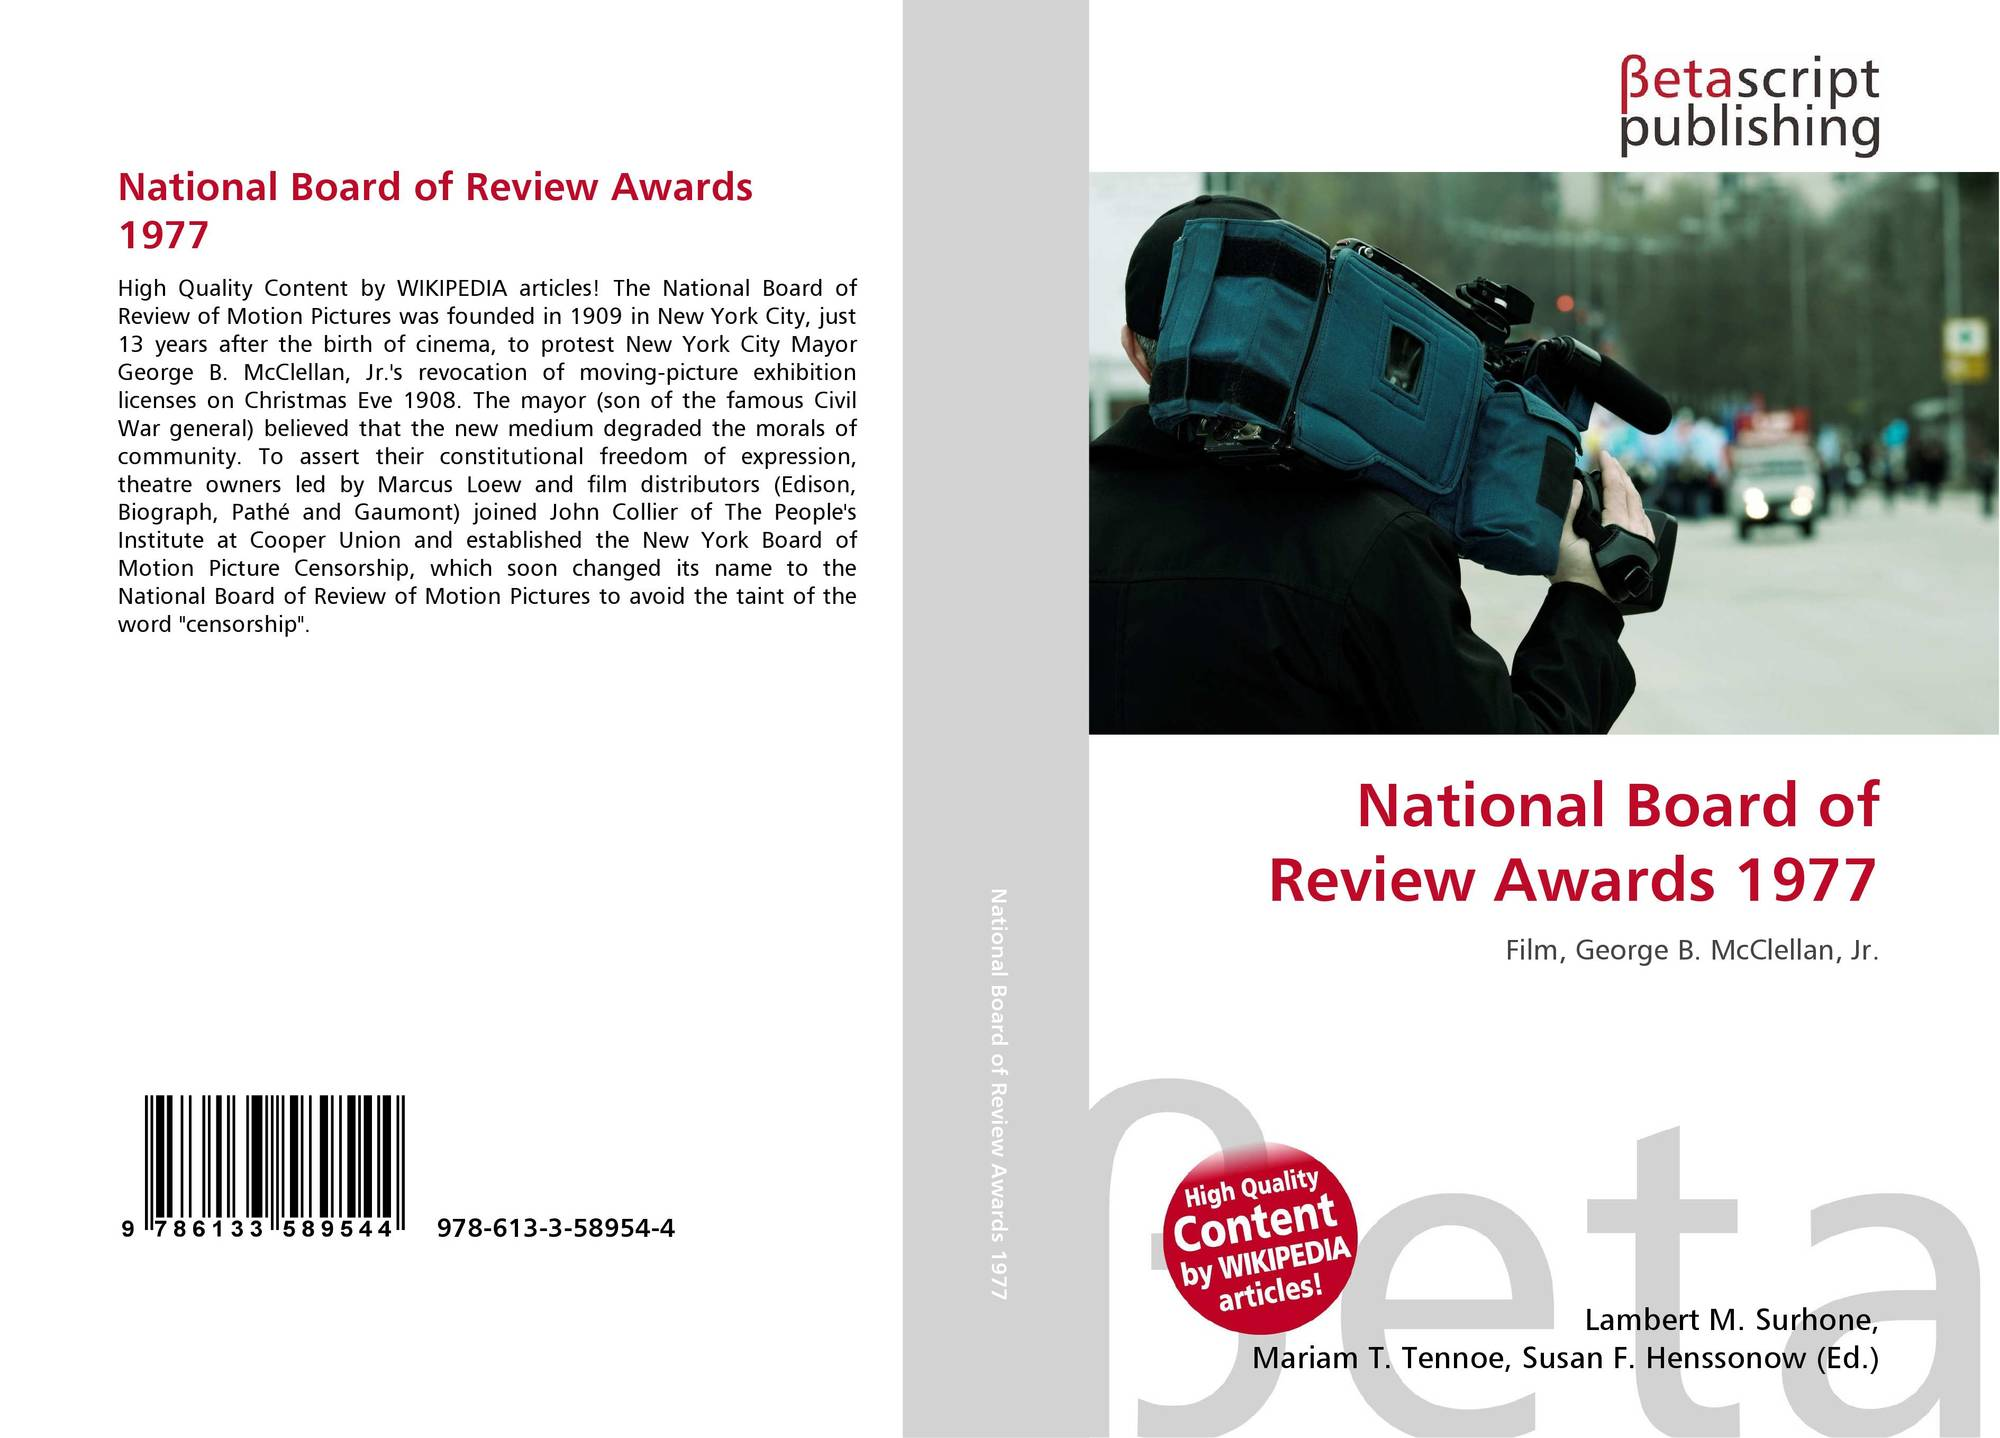 National Board of Review Awards 1977